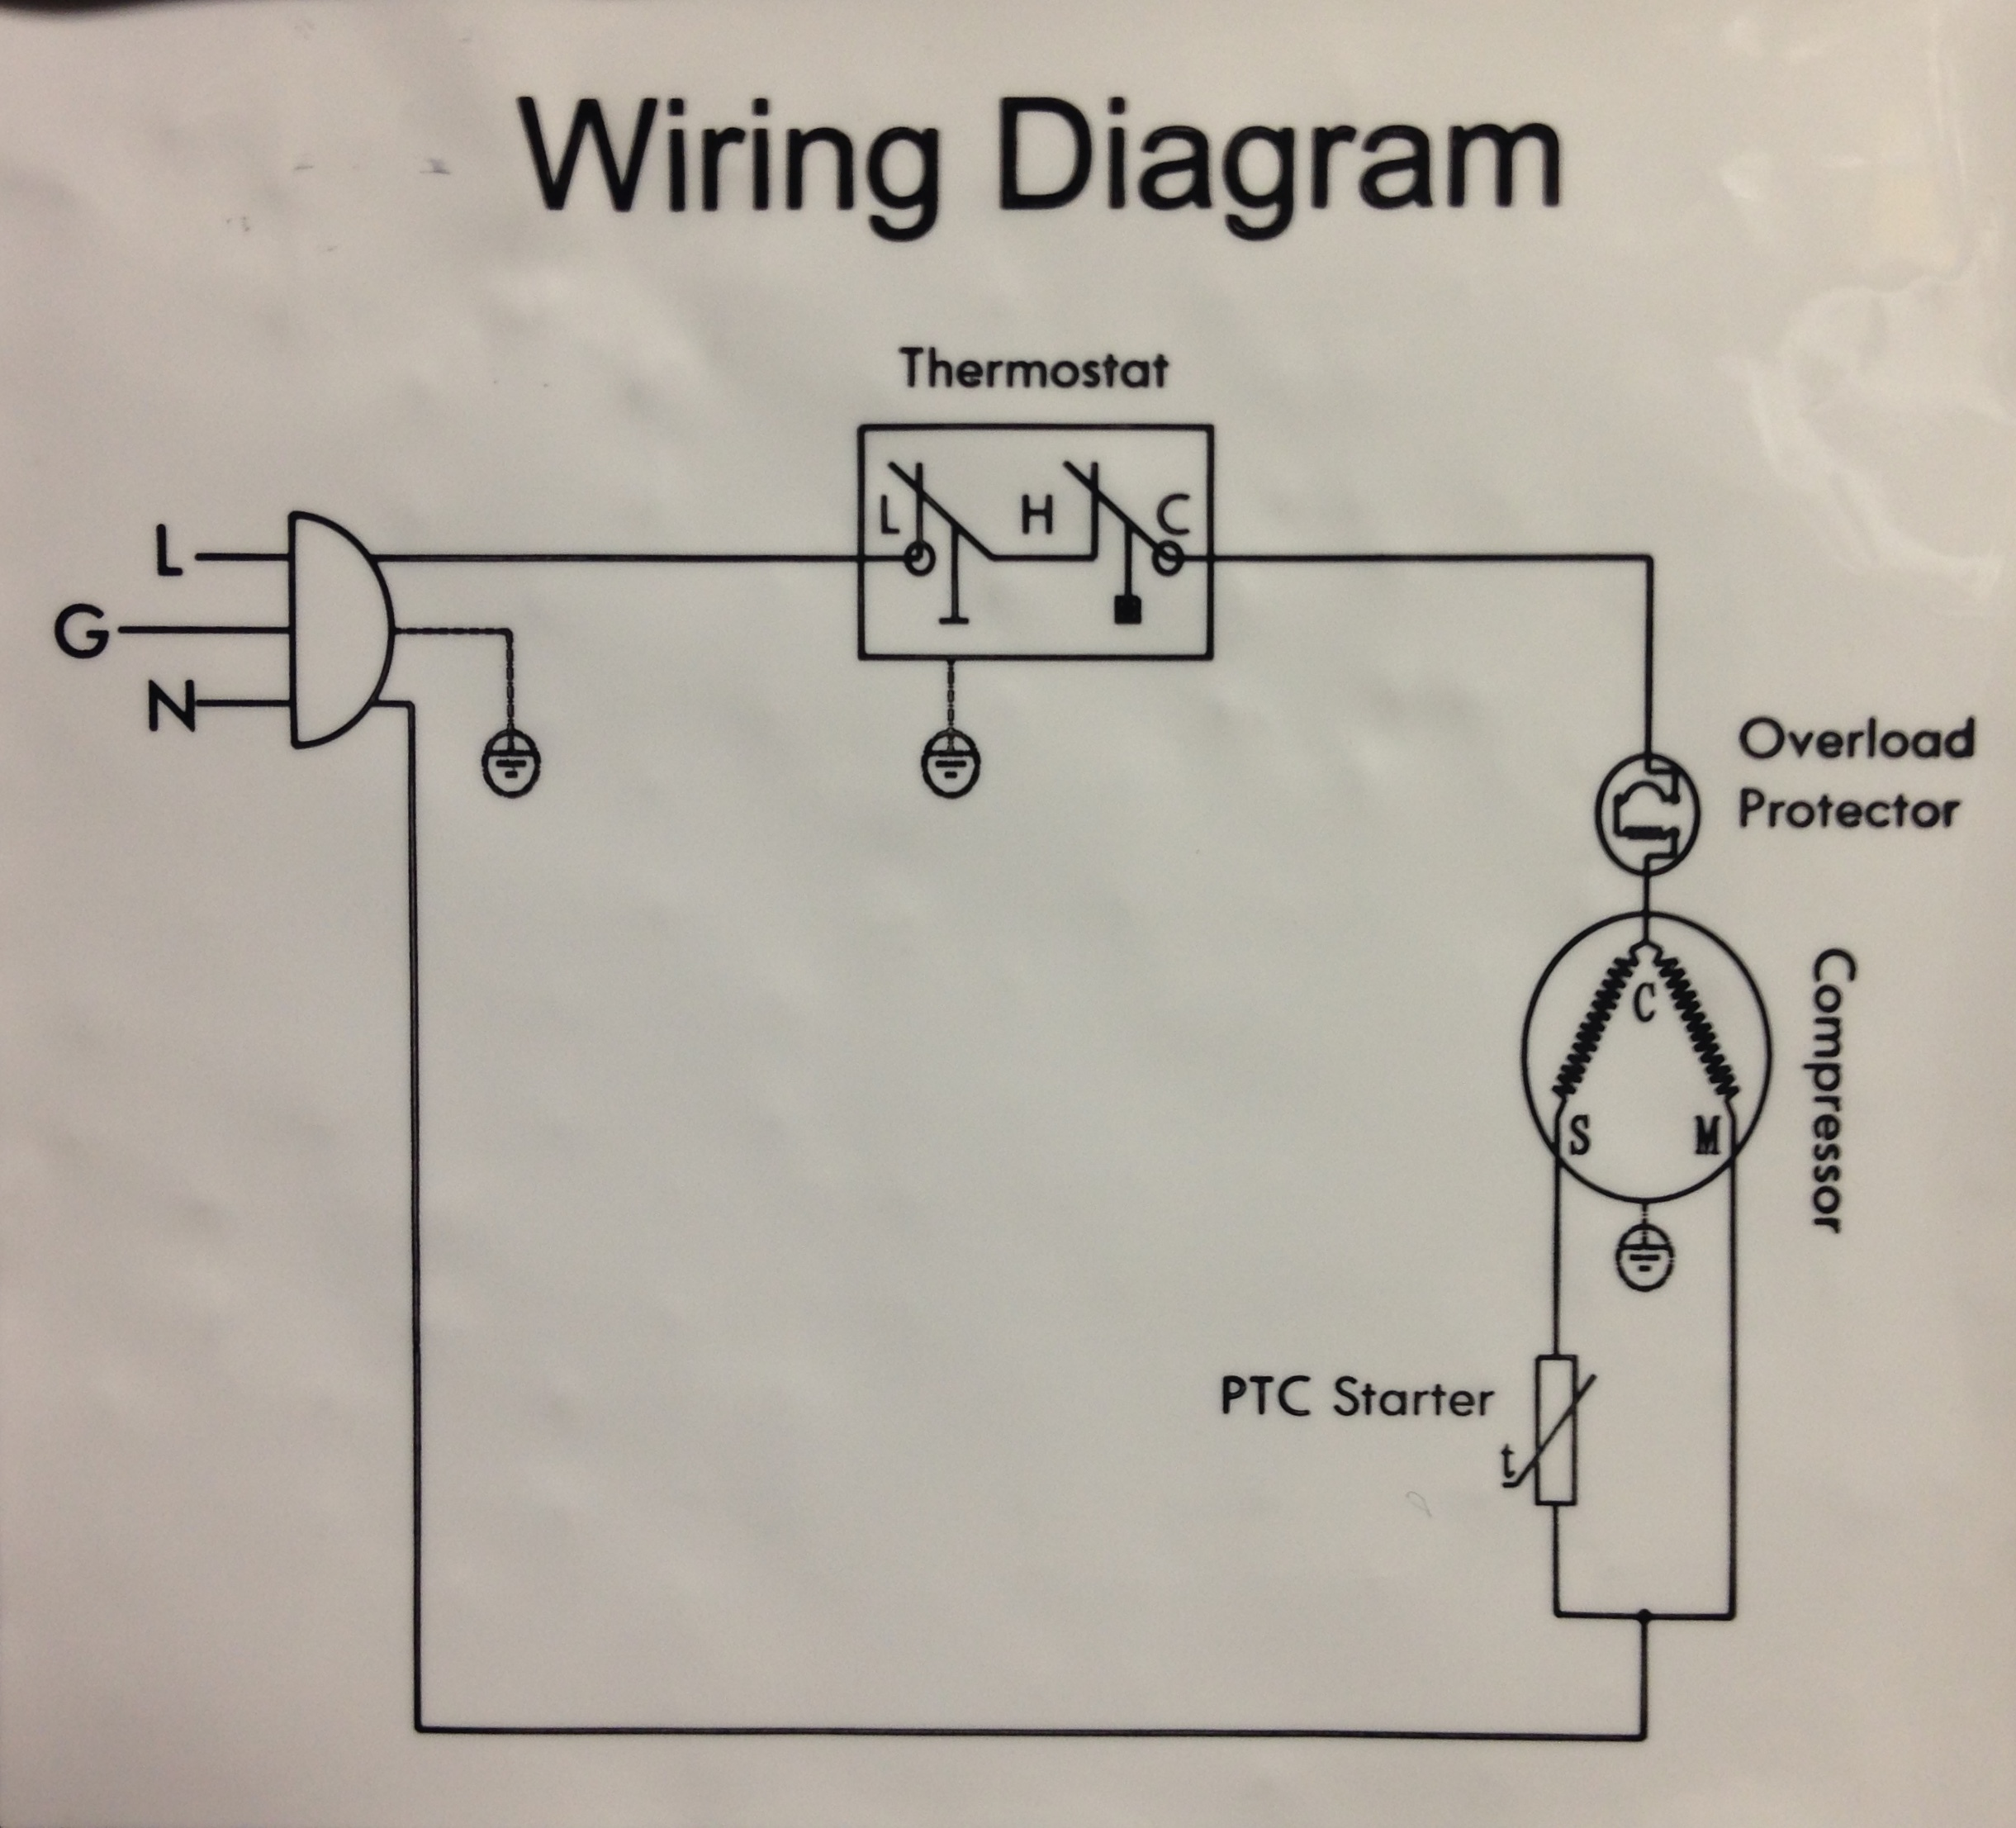 c5986337b4249150884d4e057ccb08b32fe4028e new build electronics newb diagram help fridge build brewpi pc wiring diagram at crackthecode.co